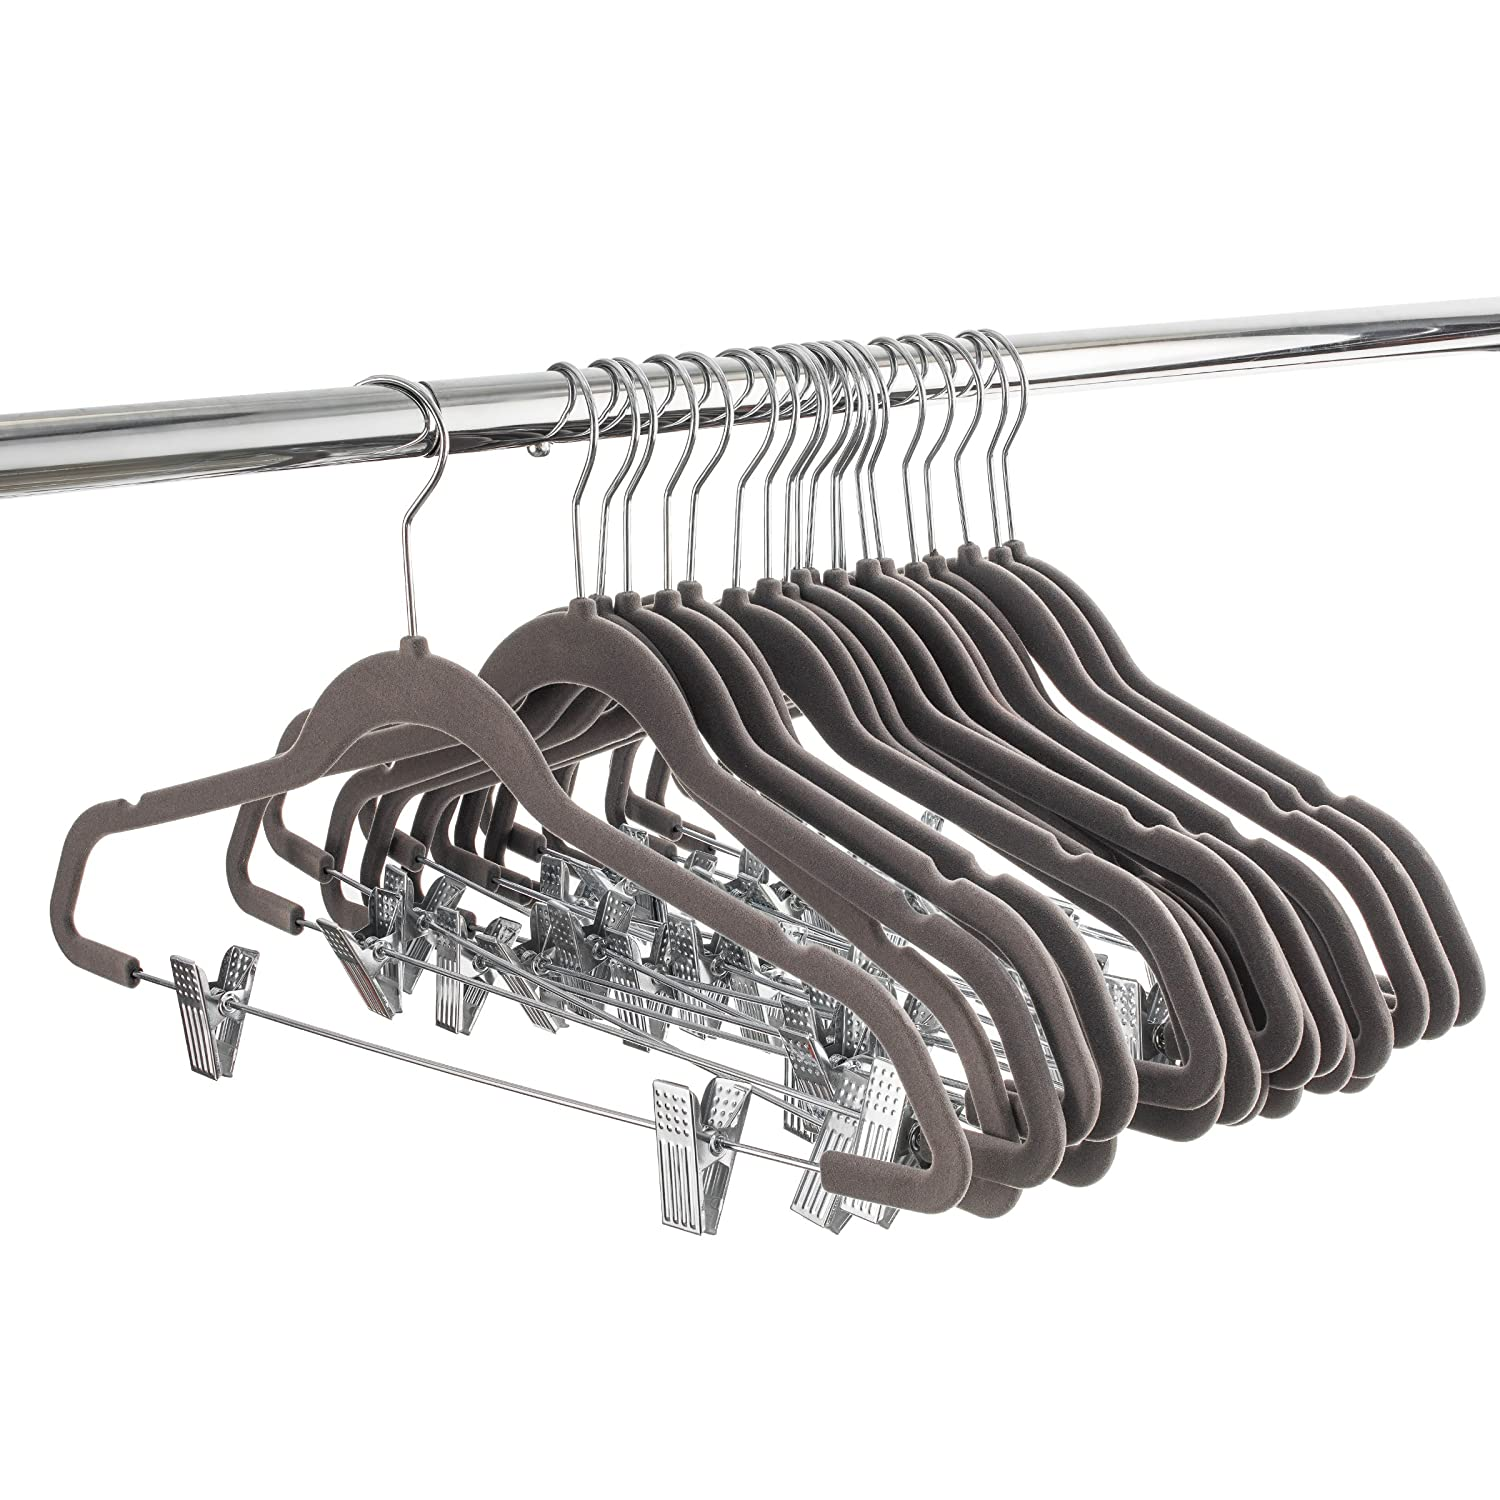 Notched Shoulder Hangers Space Saving ZOBER Velvet Hangers with Clips 20 Pack Coat Hangers /& Clip Hangers for Pants//Skirts Skirt//Pants Hangers 360/° Hook Strong /& Durable Non Slip Hangers